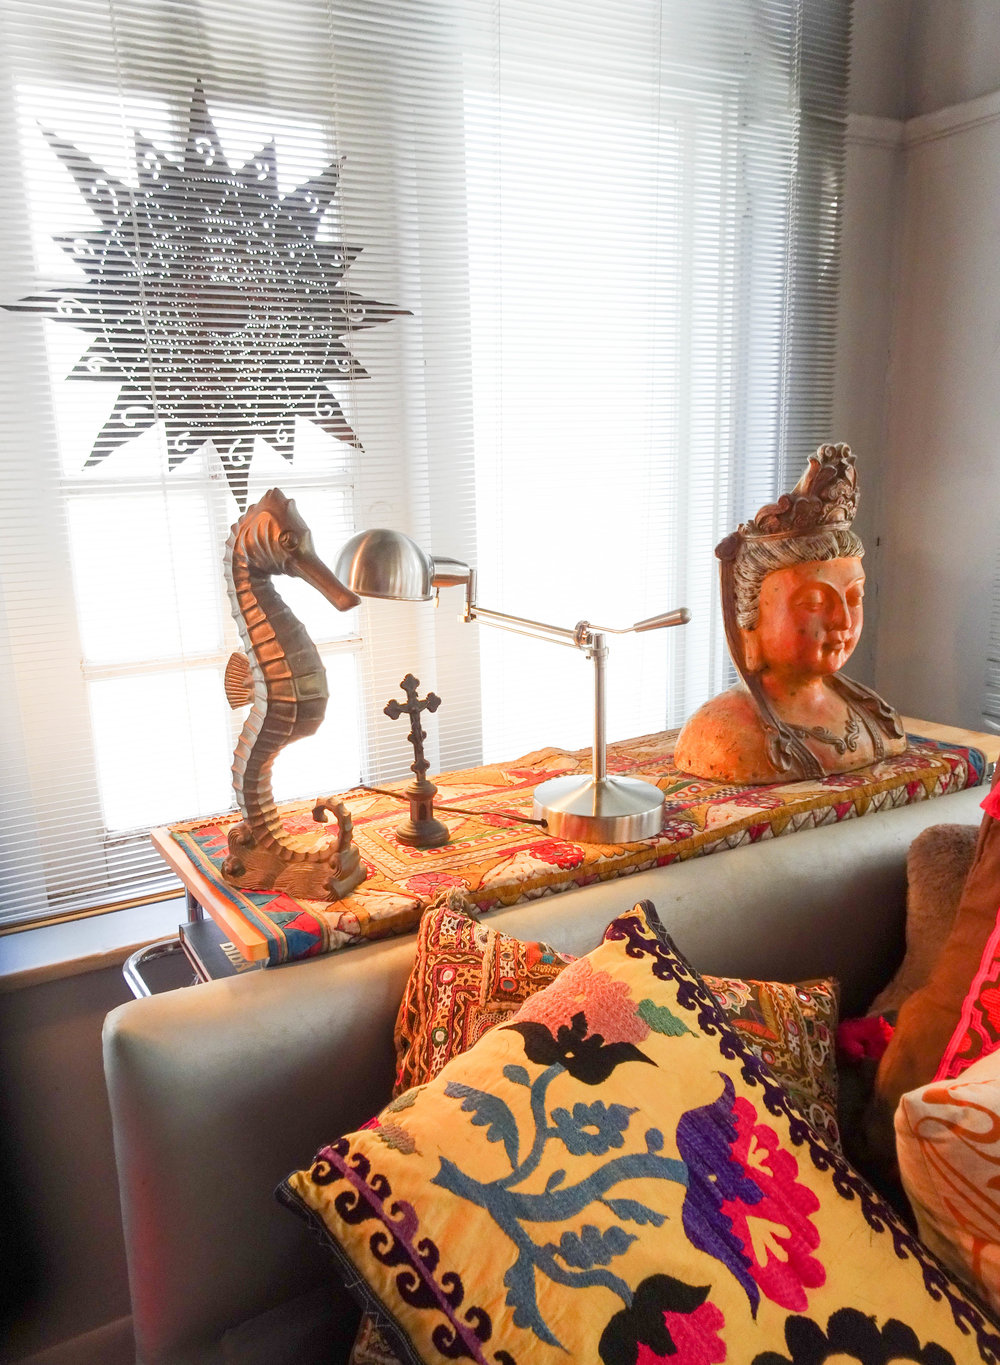 {HOME TOUR} FASHION DESIGNER BARBARA HULANICKI SHOWS US AROUND HER MIAMI APARTMENT